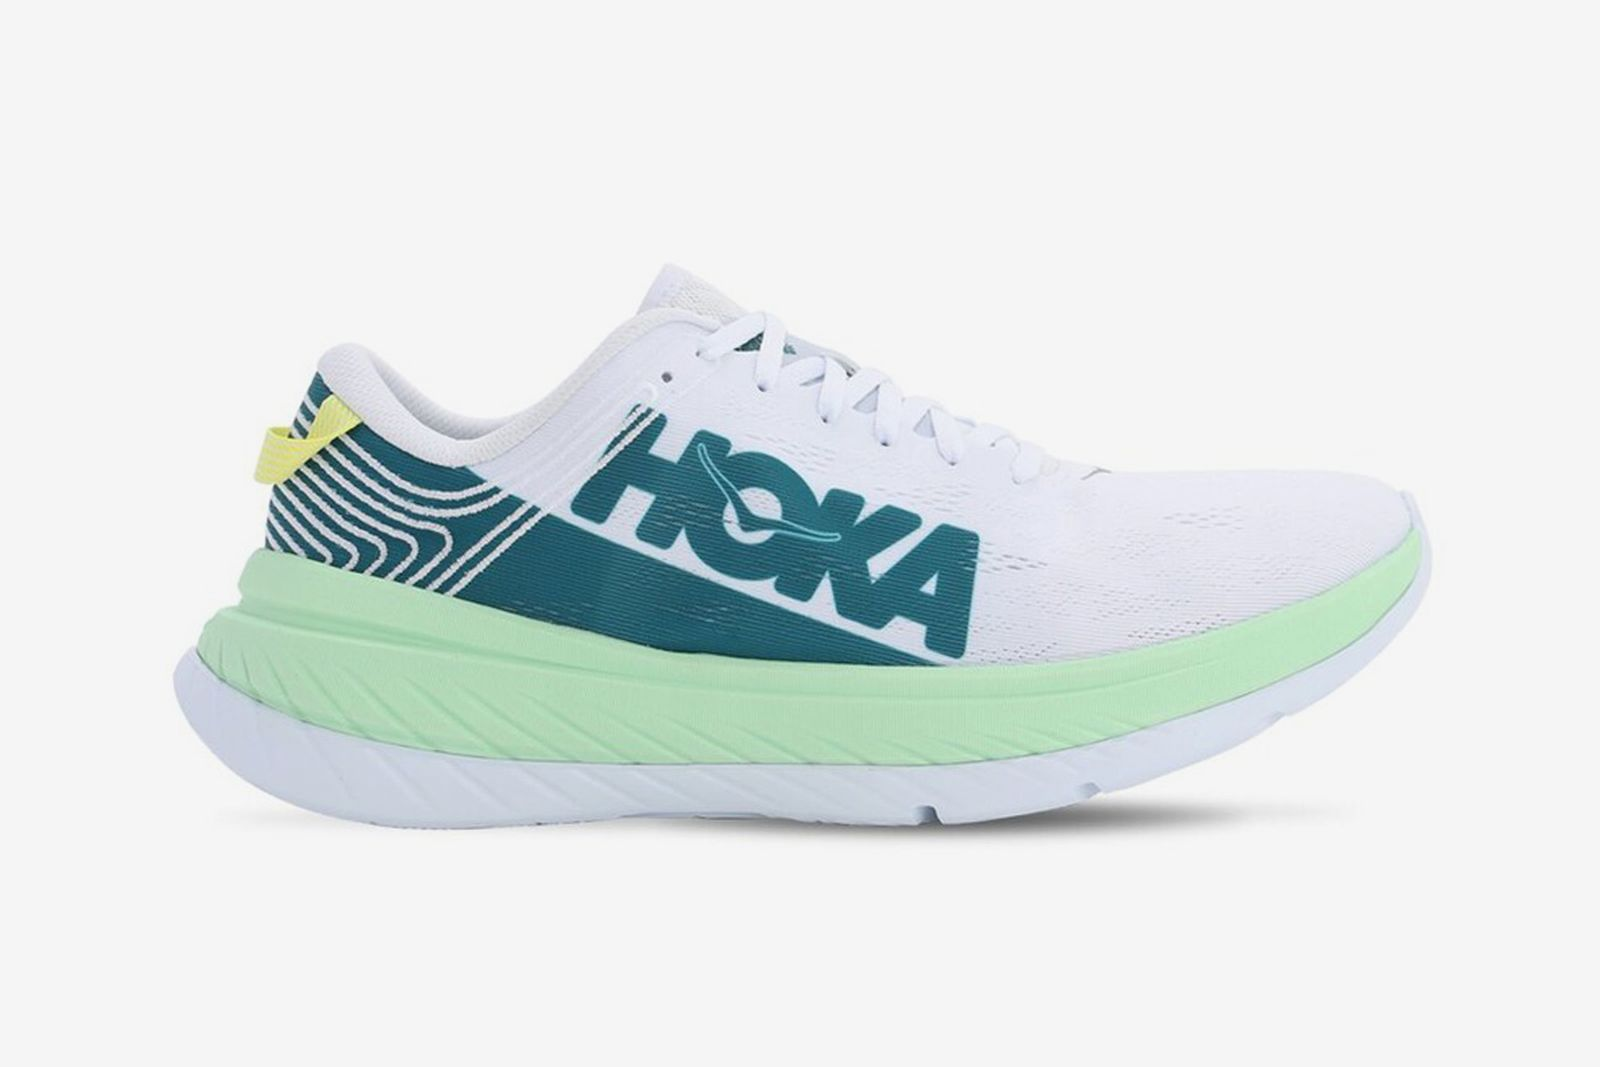 best-running-shoes-for-men-guide-hoka-one-one-carbon-x